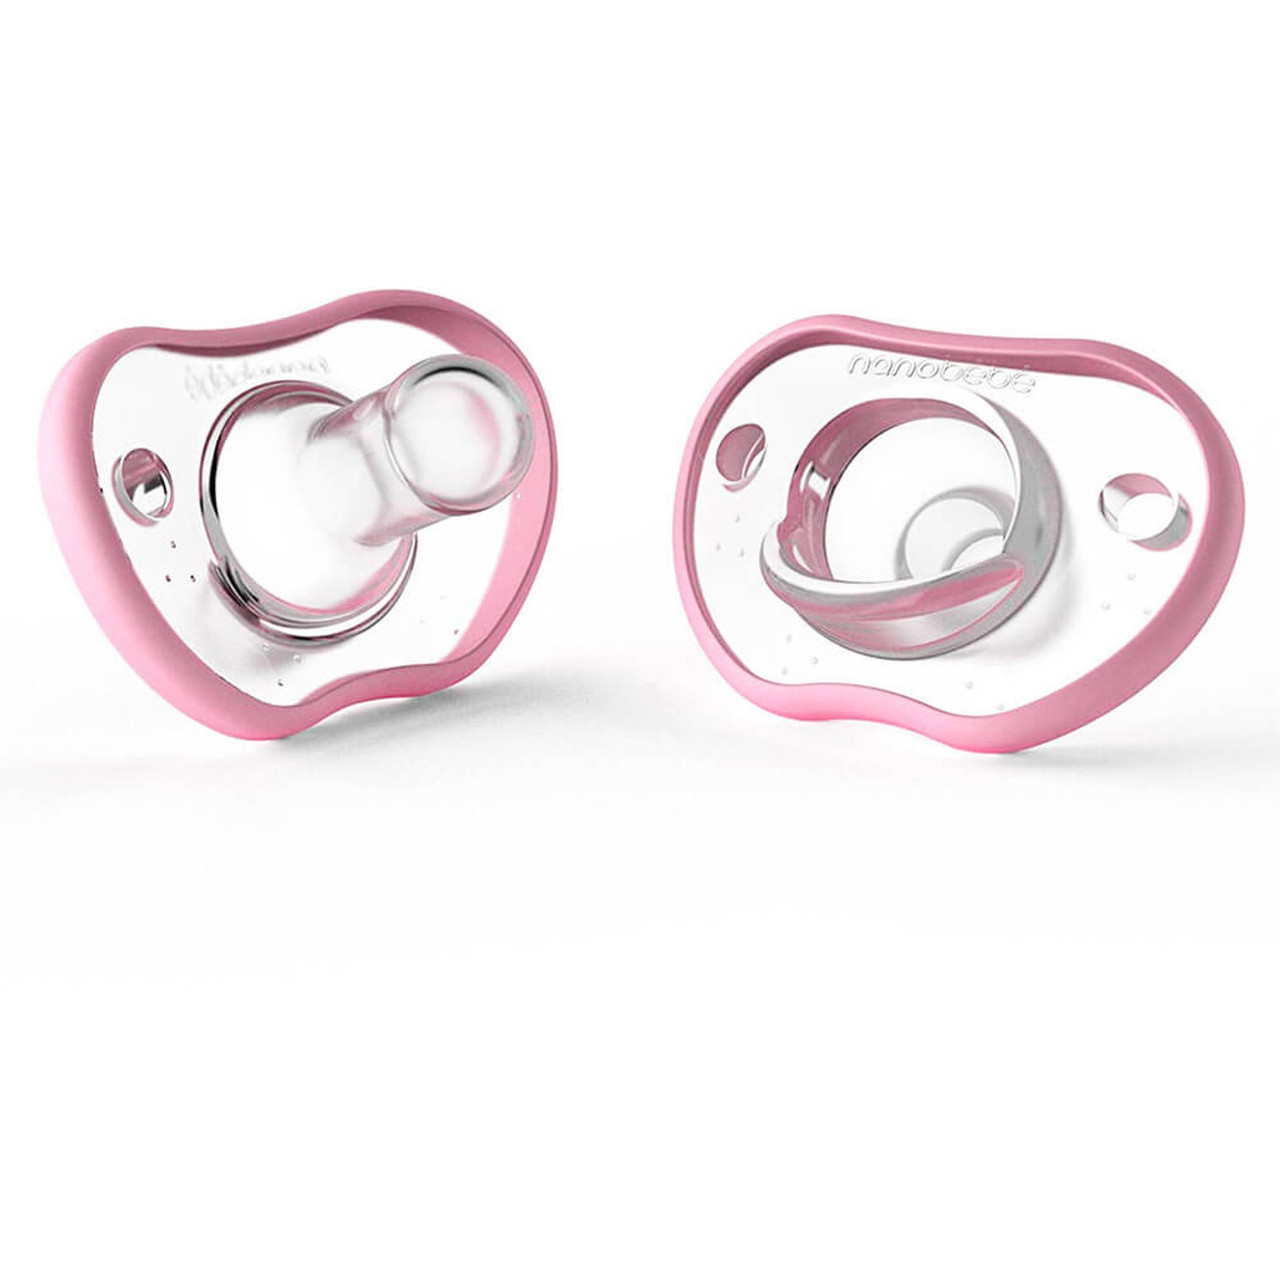 Nanobebe Flexy Pacifier 0-3m 2pk at Baby Barn Discounts Nanobébé's Flexy pacifier will calm and soothe your newborn from their very first day.